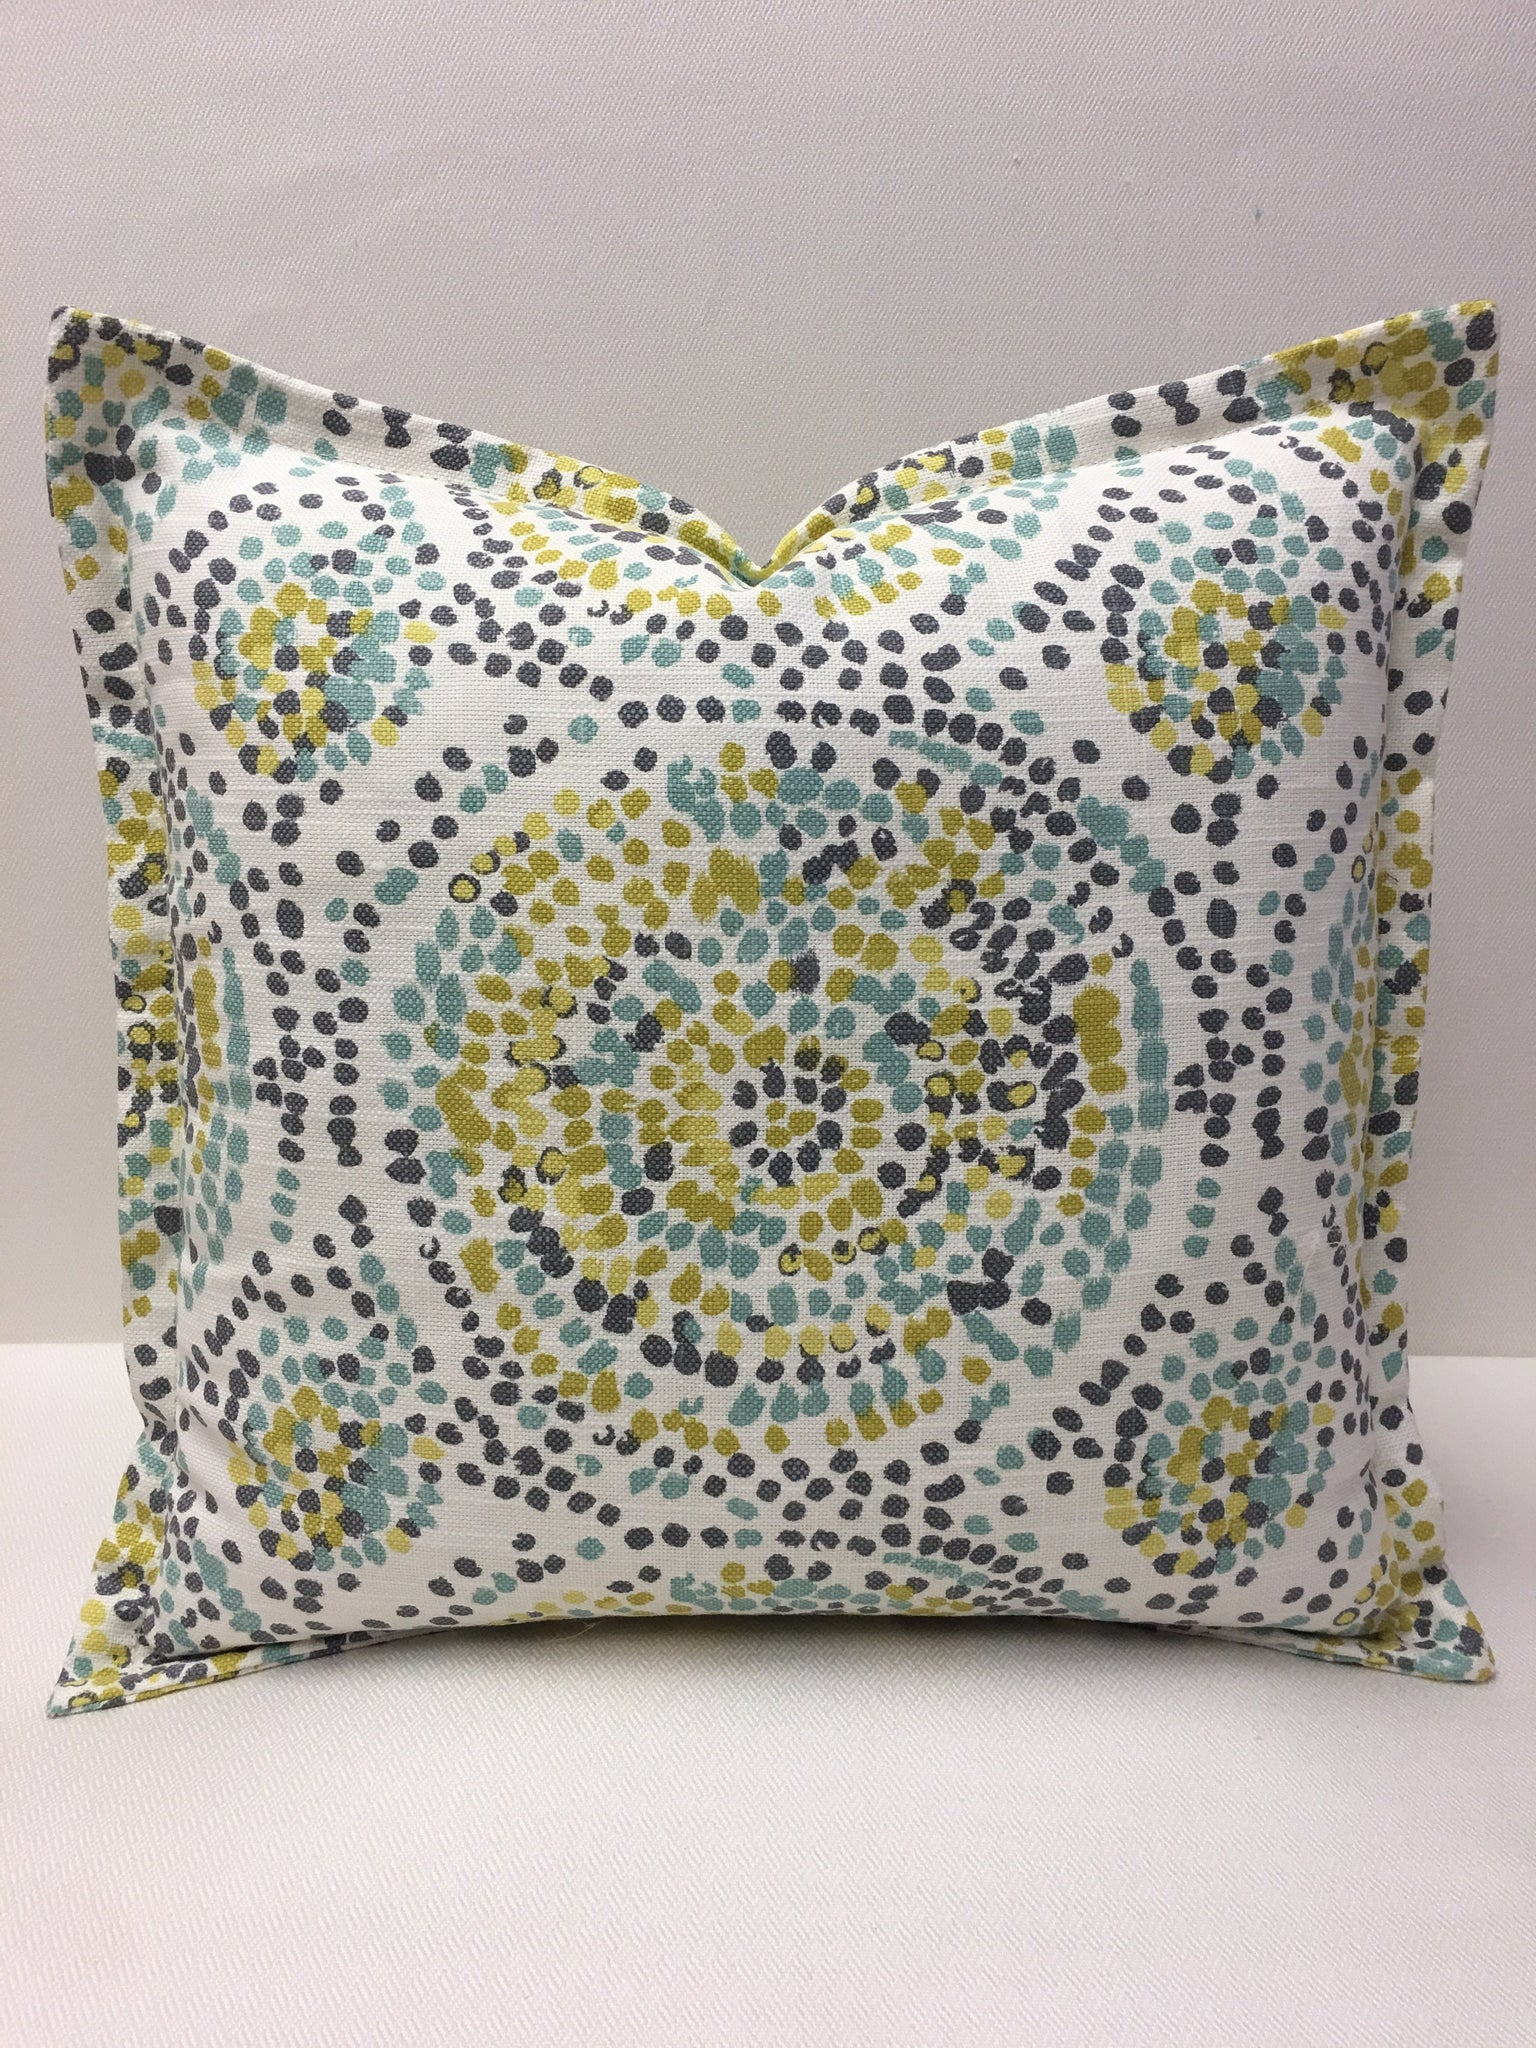 Duralee White cotton, Blue, Gold,Design Pillow Cover, Eurosham or Lumbar Pillow Accent Pillow, Throw Pillow